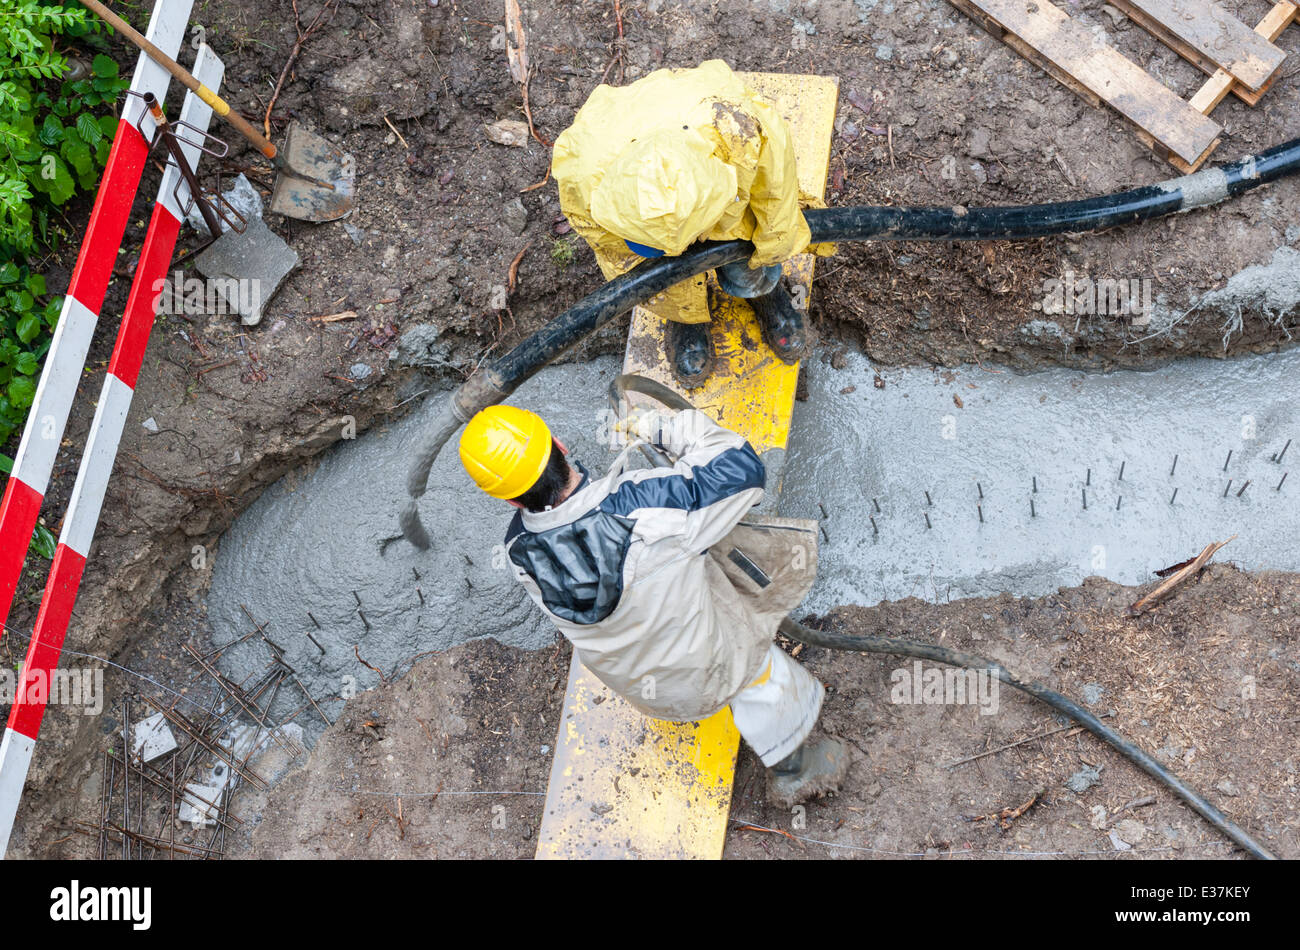 Construction workers pour concrete into a ditch. Rainy weather. Bird's eye view. Stock Photo